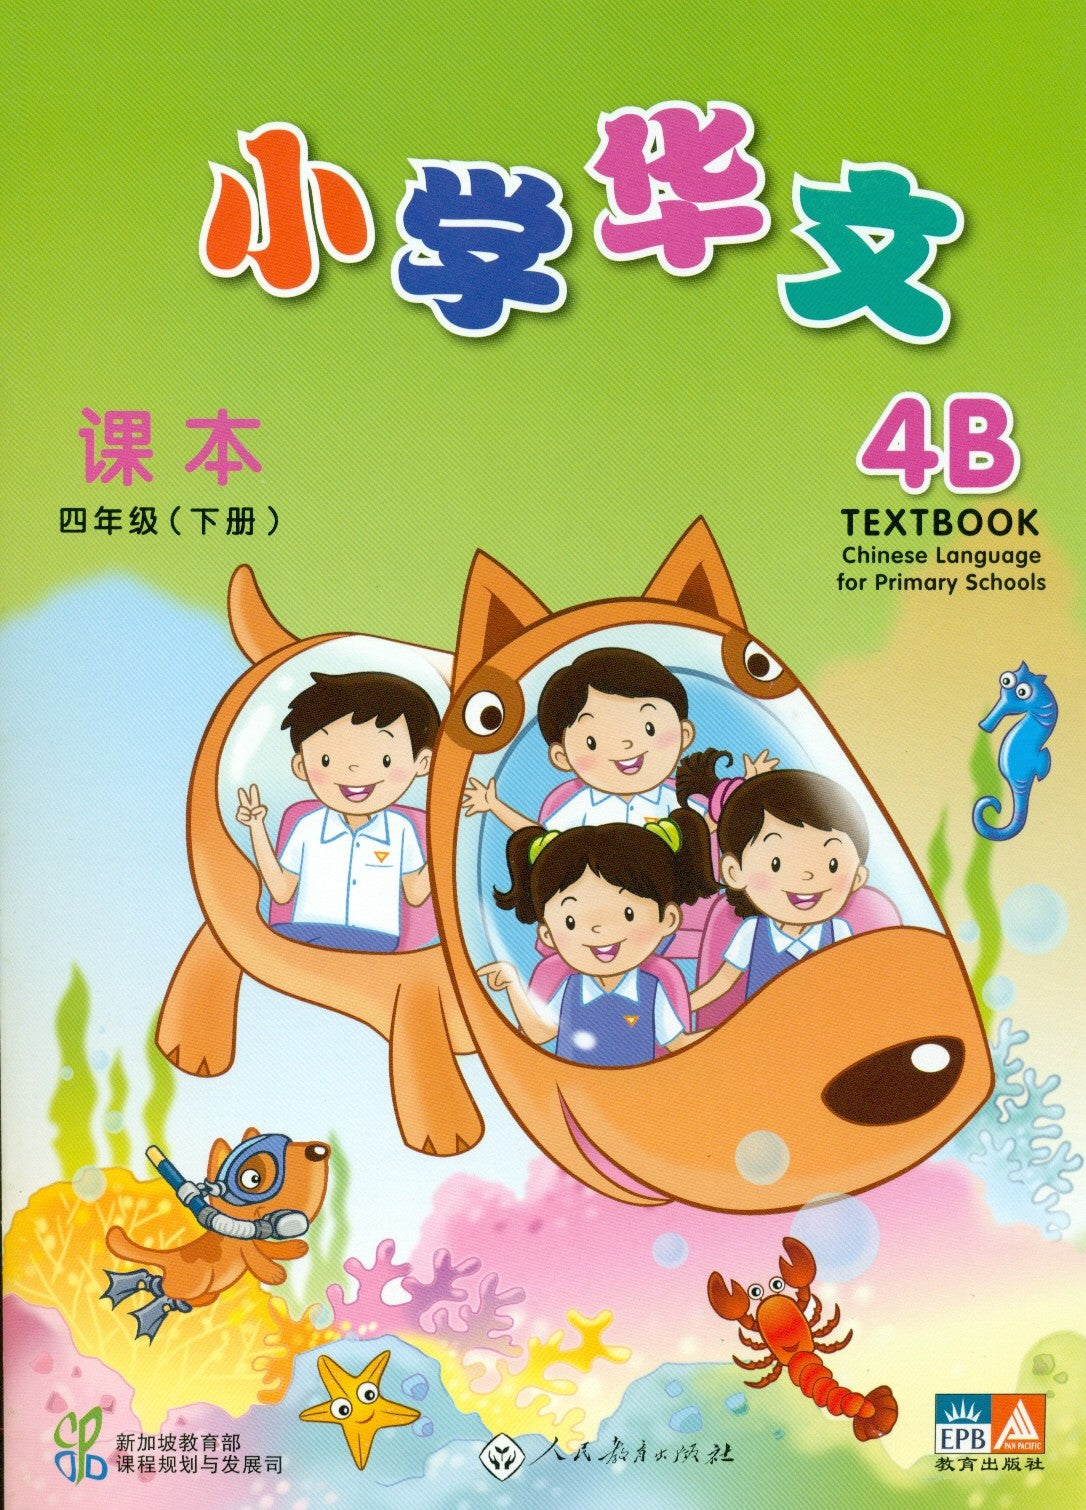 Chinese Language for Primary Schools: Textbook 4B